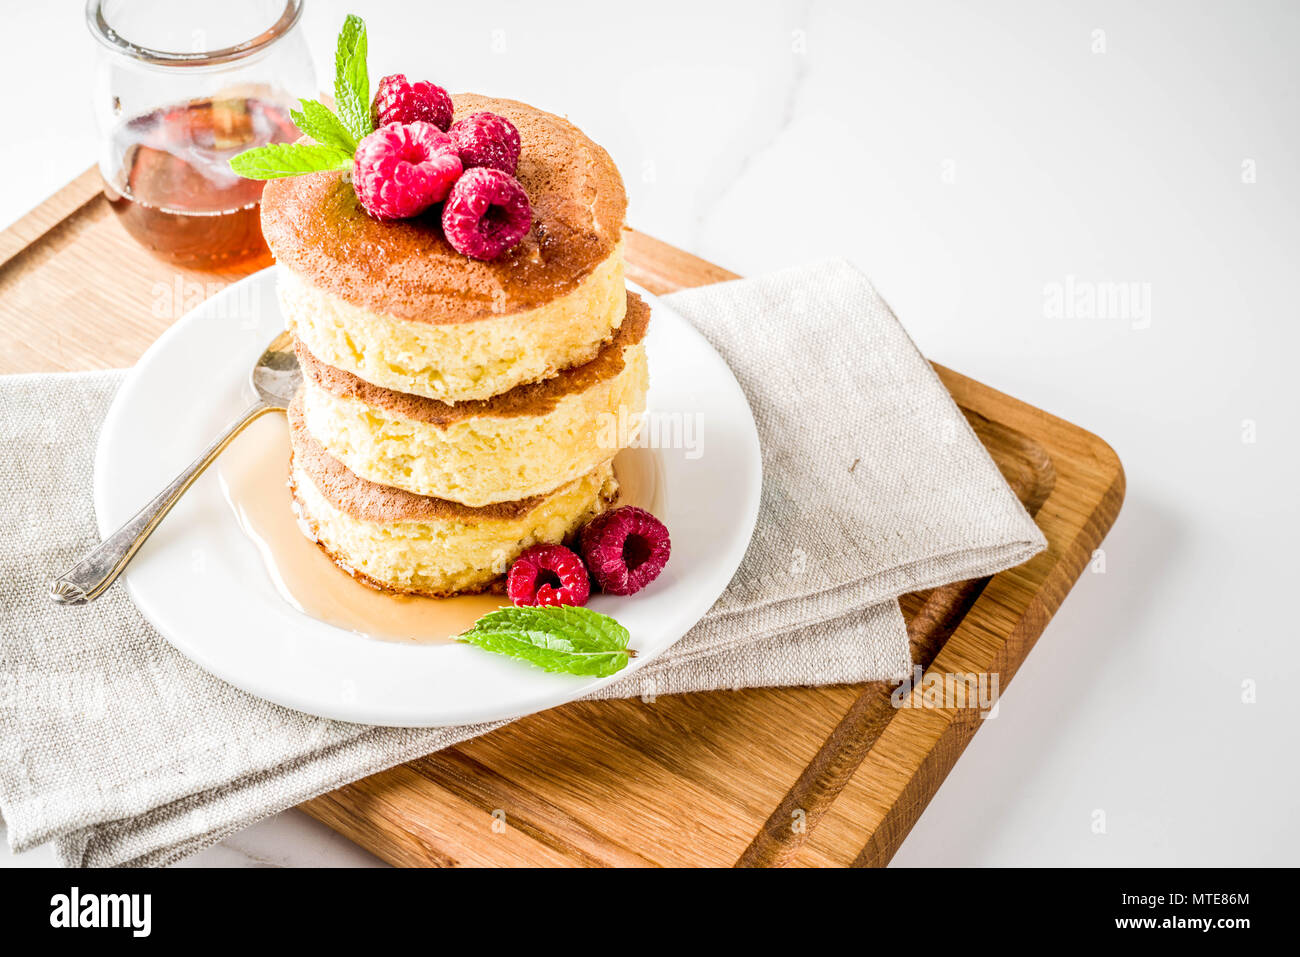 Trendy asian food, Fluffy Japan souffle pancakes, hotcakes with maple syrup and raspberry light concrete background copy space - Stock Image